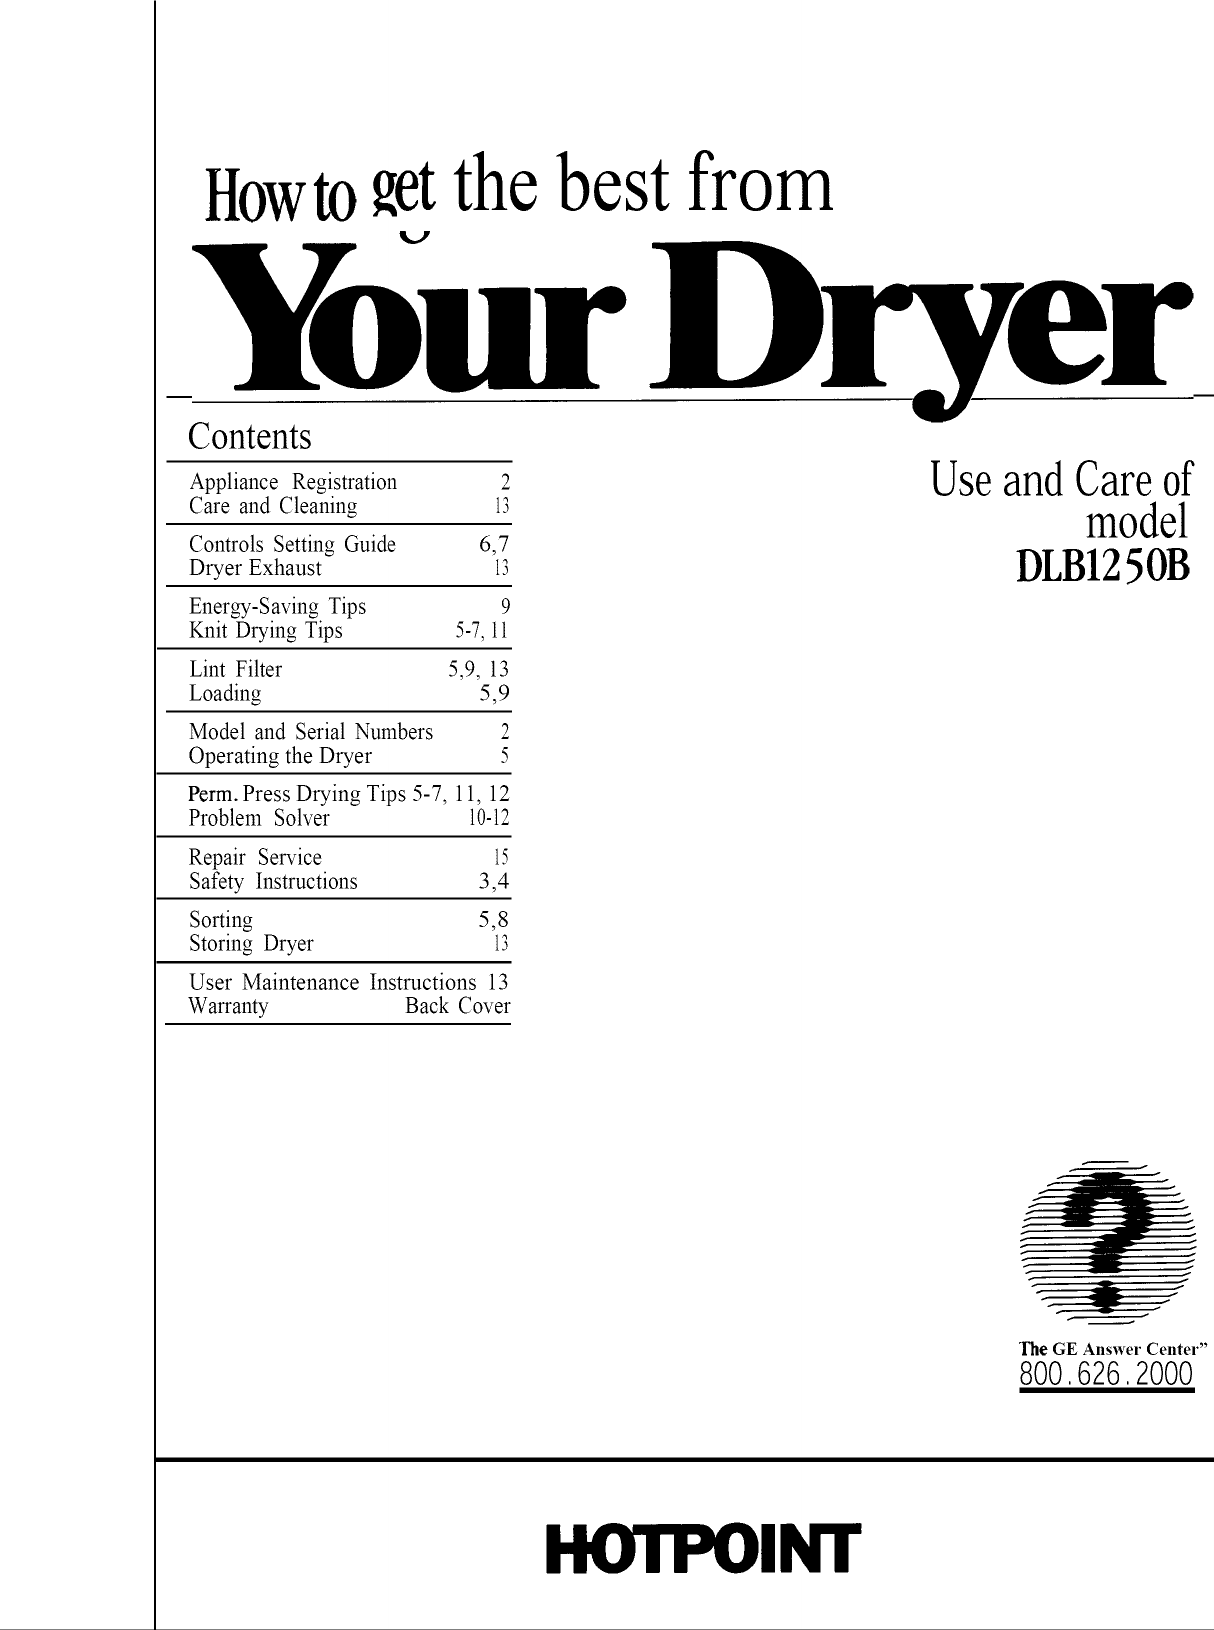 Hotpoint DLB1250BCL User Manual DRYER Manuals And Guides